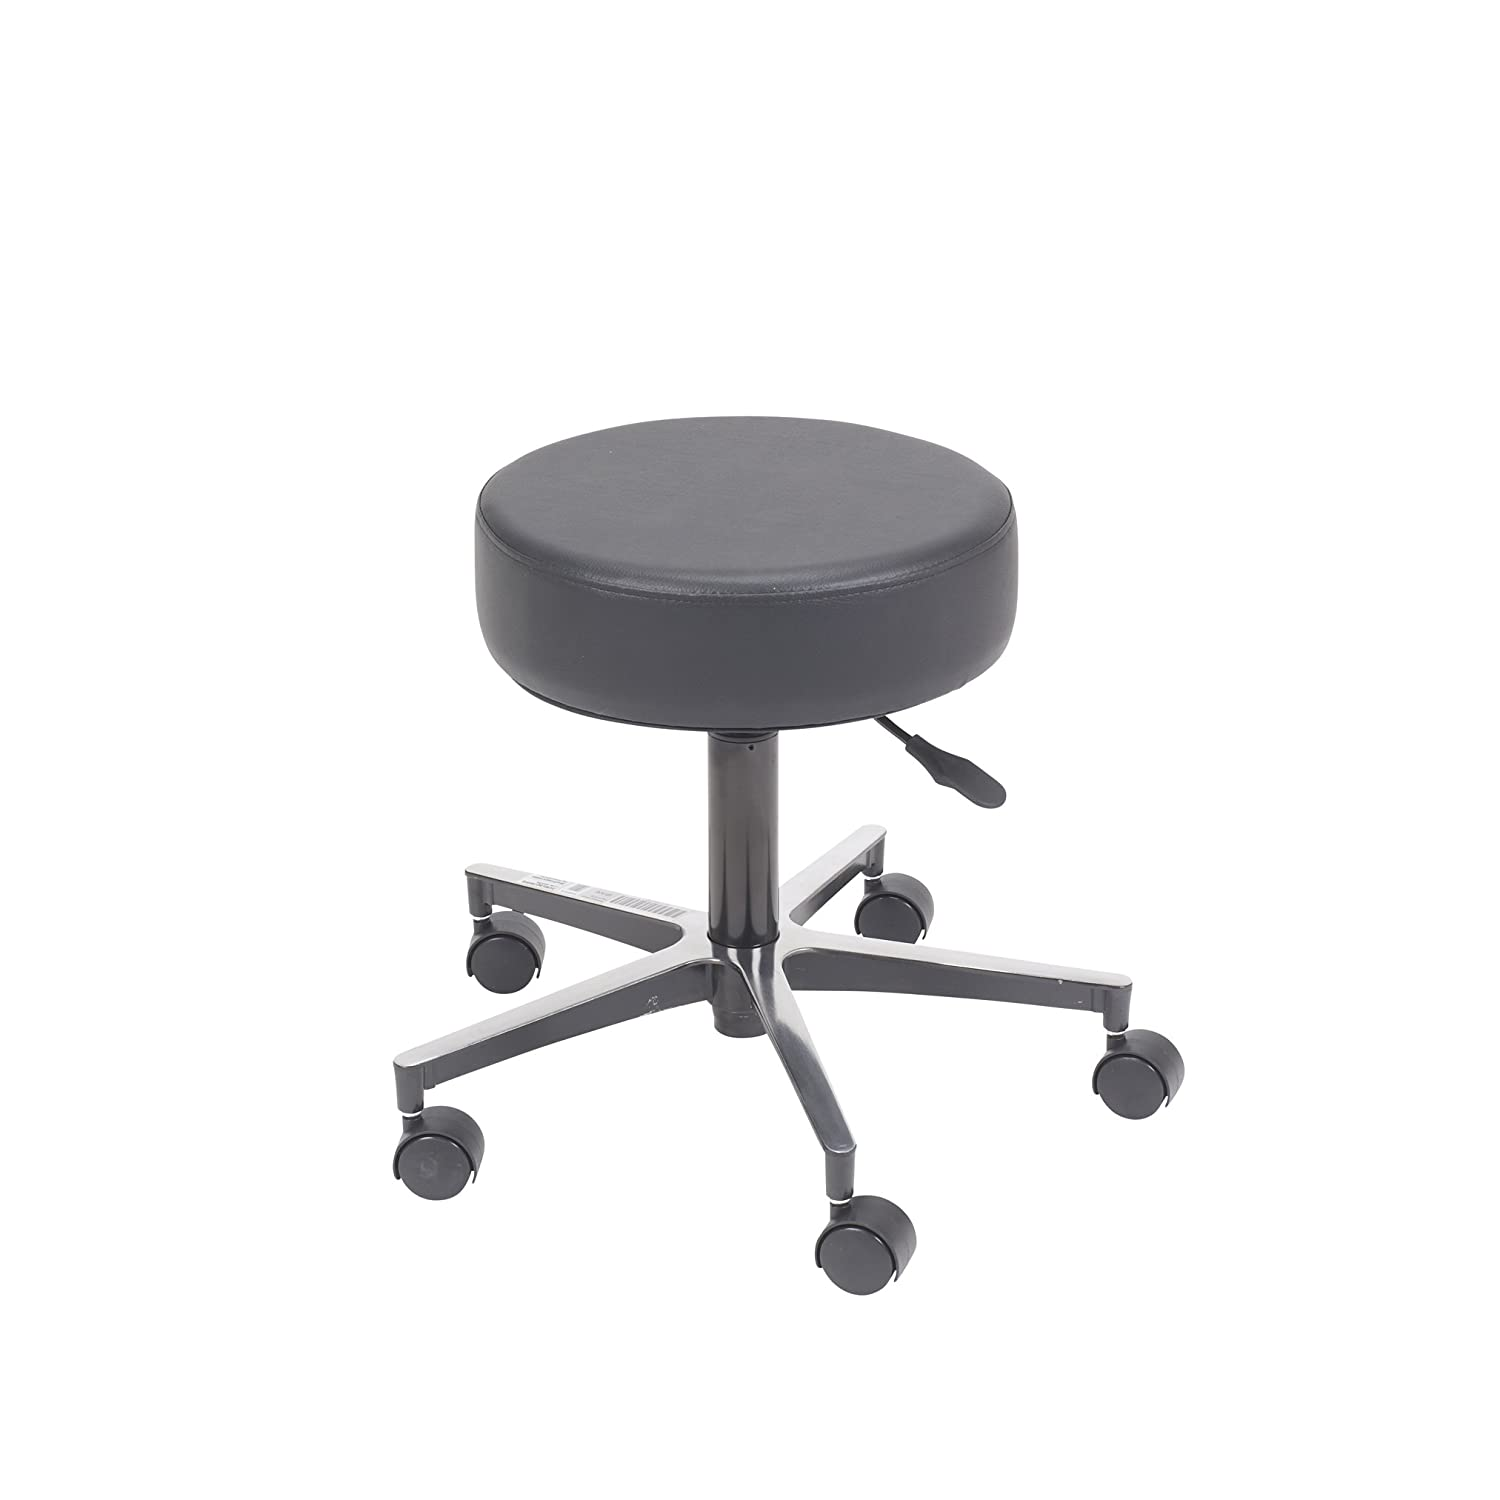 Amazon.com Drive Medical Padded Seat Revolving Pneumatic Adjustable Height Stool with Metal Base Black Health u0026 Personal Care  sc 1 st  Amazon.com & Amazon.com: Drive Medical Padded Seat Revolving Pneumatic ... islam-shia.org